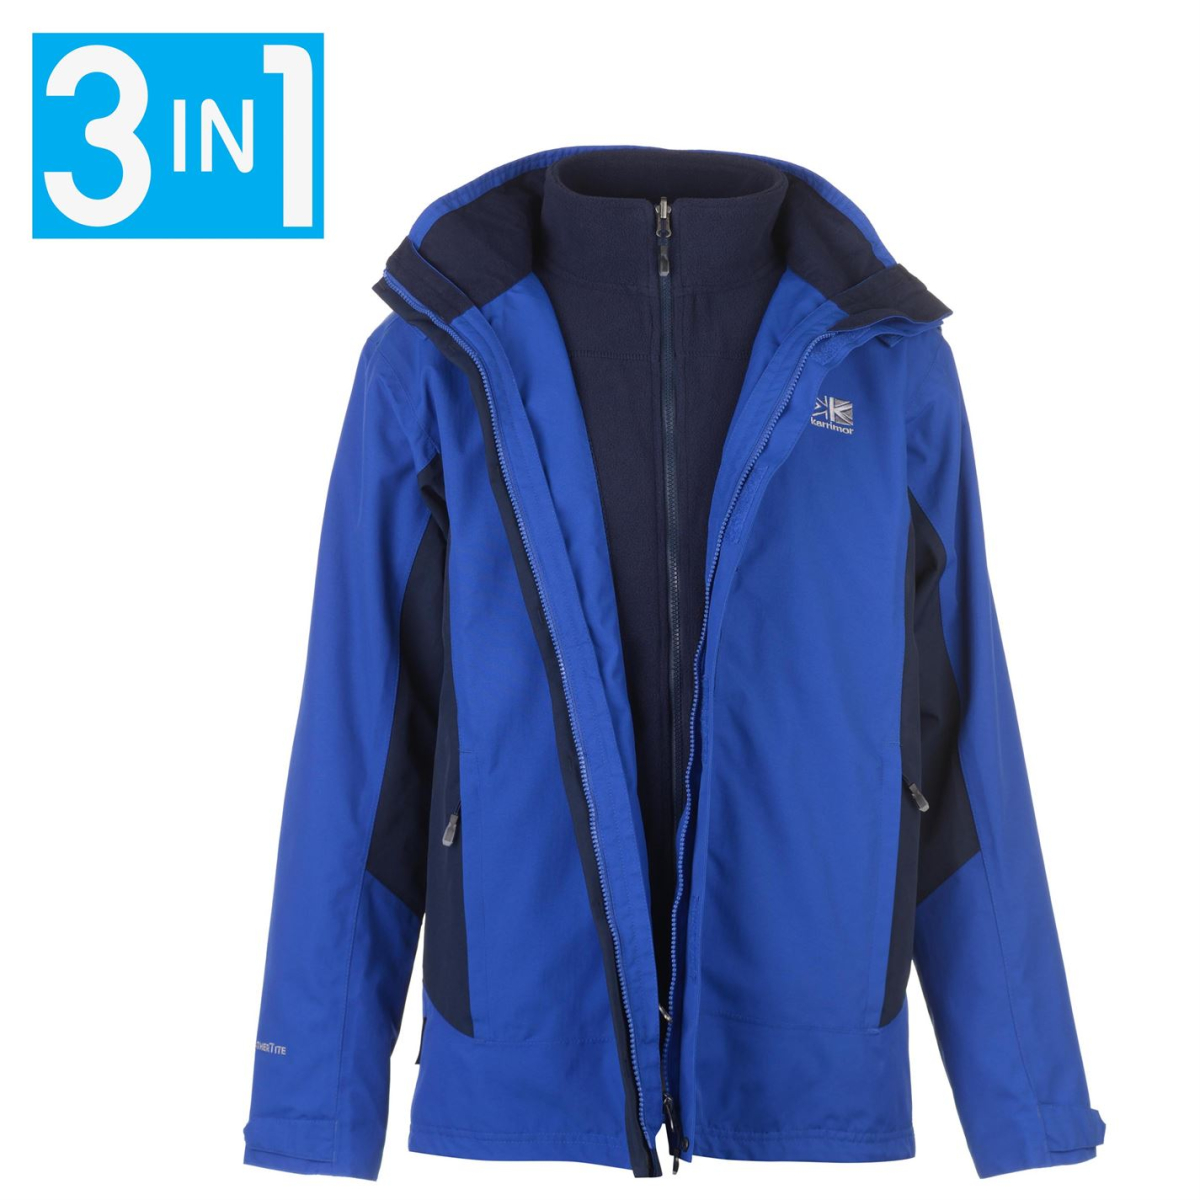 Karrimor 3 In 1 Weathertite Winterjacke Jacke Herren